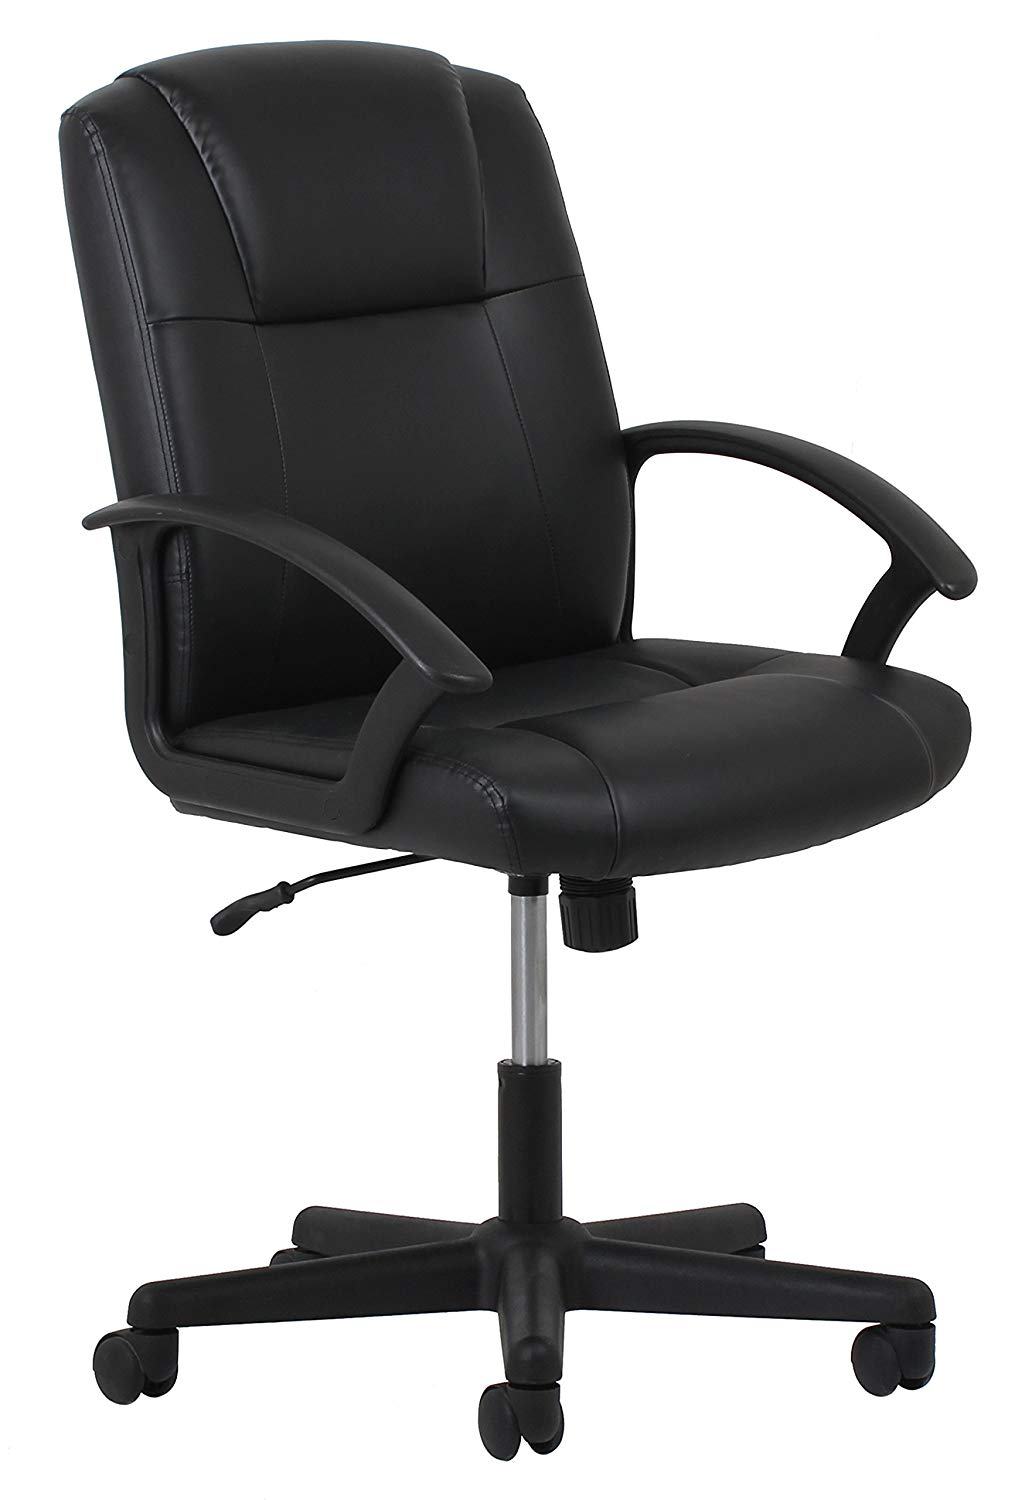 Essentials Leather Executive Office/Computer Chair with Arms - Executive Chairs